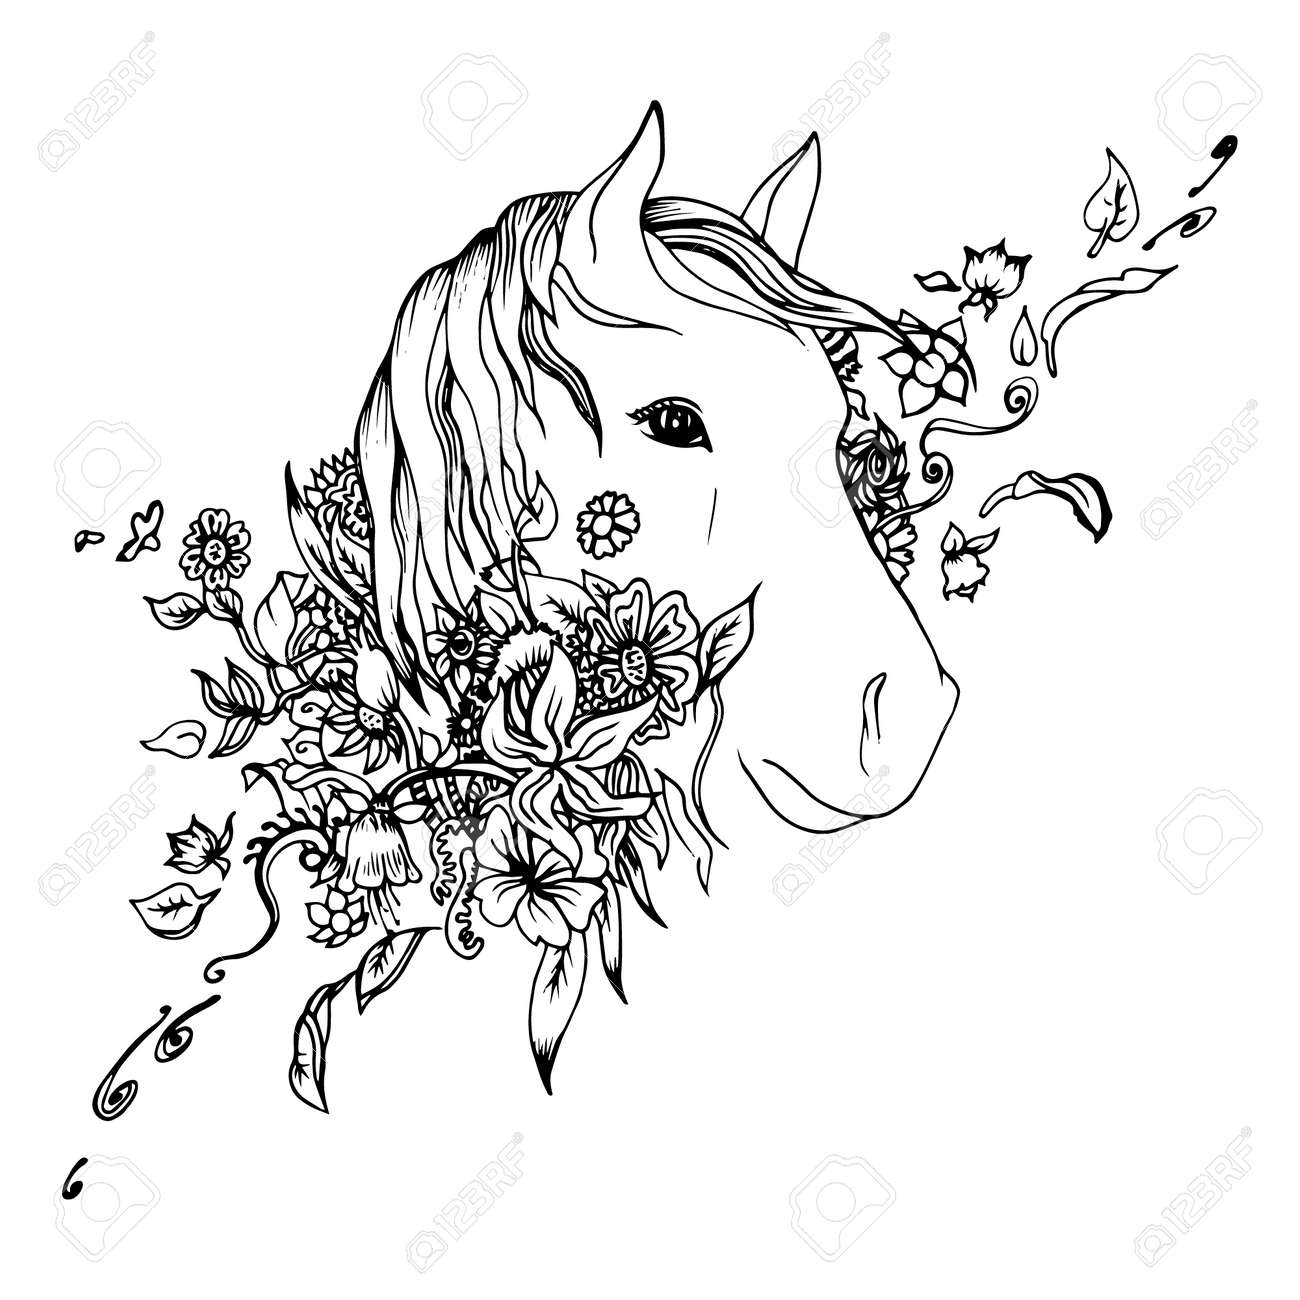 Black And White Horse Head Isolated Engraving Sketch Abstract Royalty Free Cliparts Vectors And Stock Illustration Image 43731573